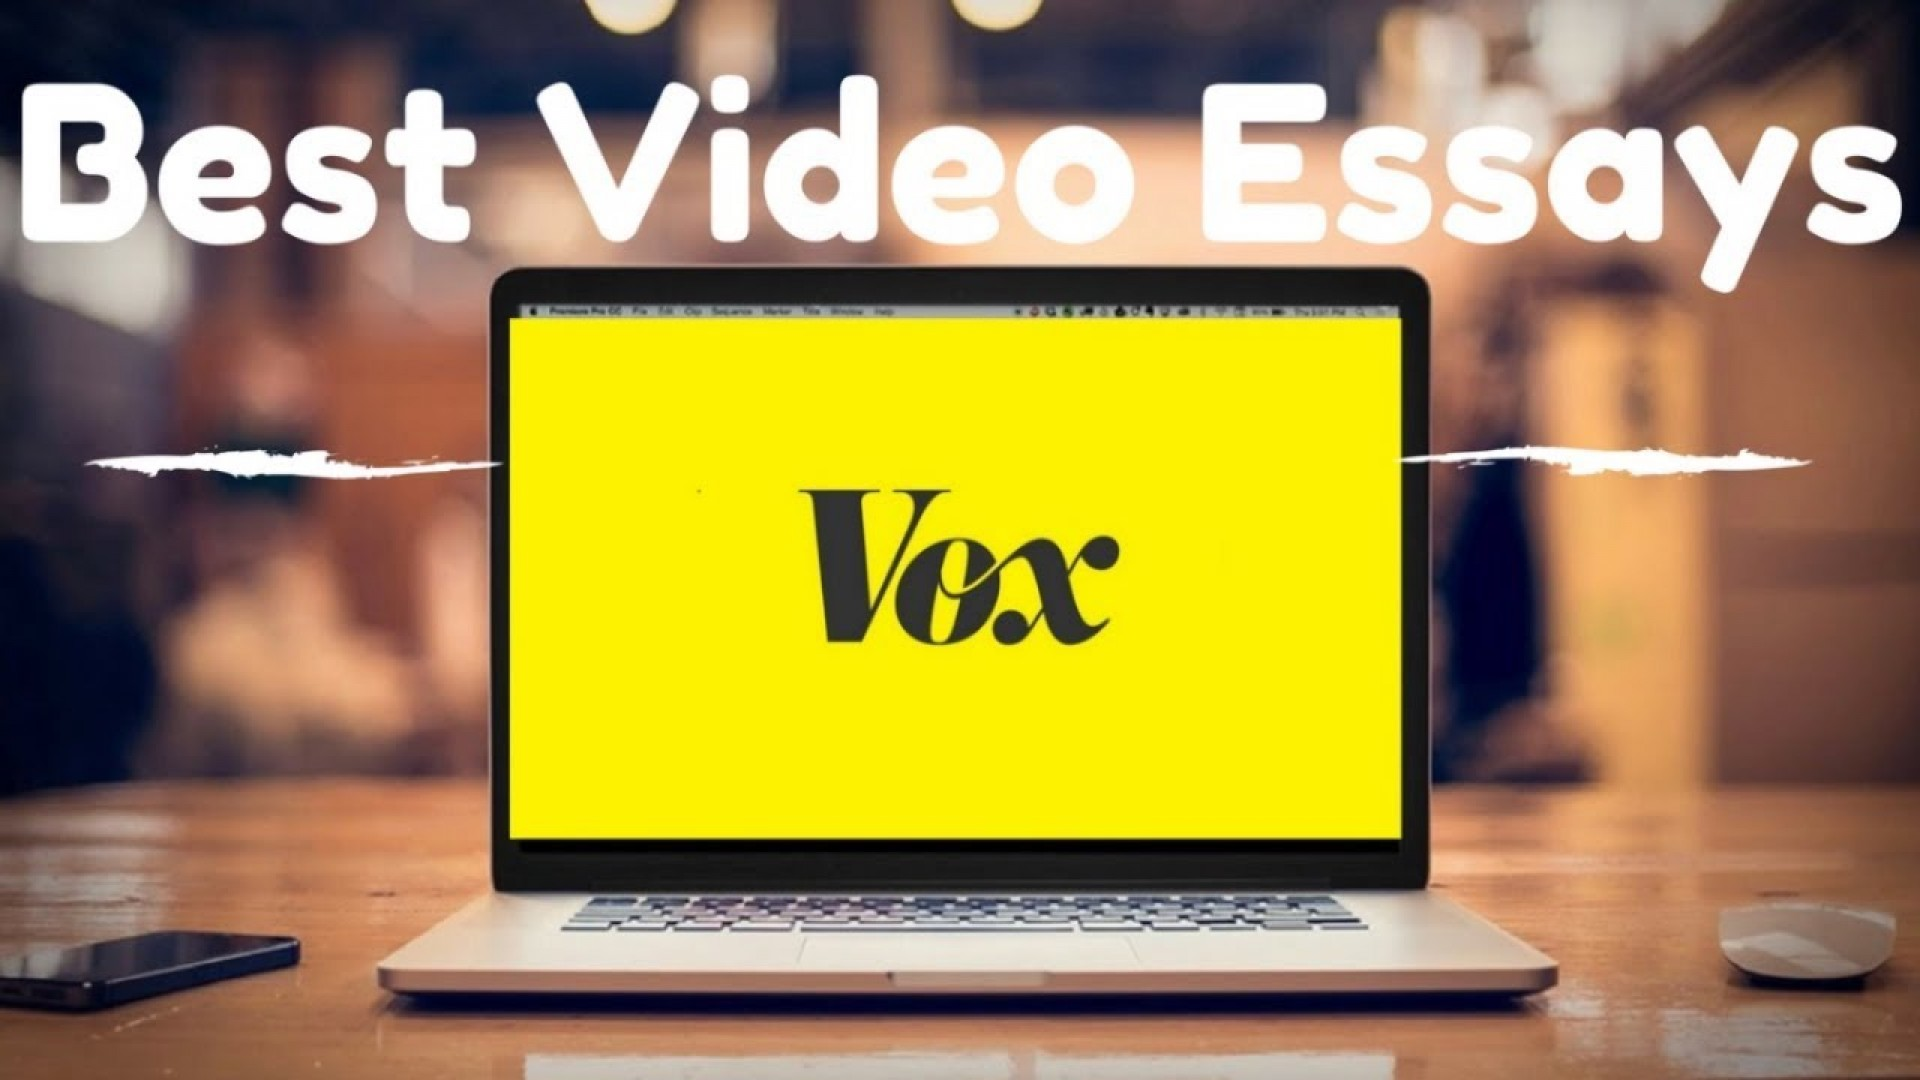 003 Maxresdefault Video Essay Marvelous Definition Ideas College Examples 1920